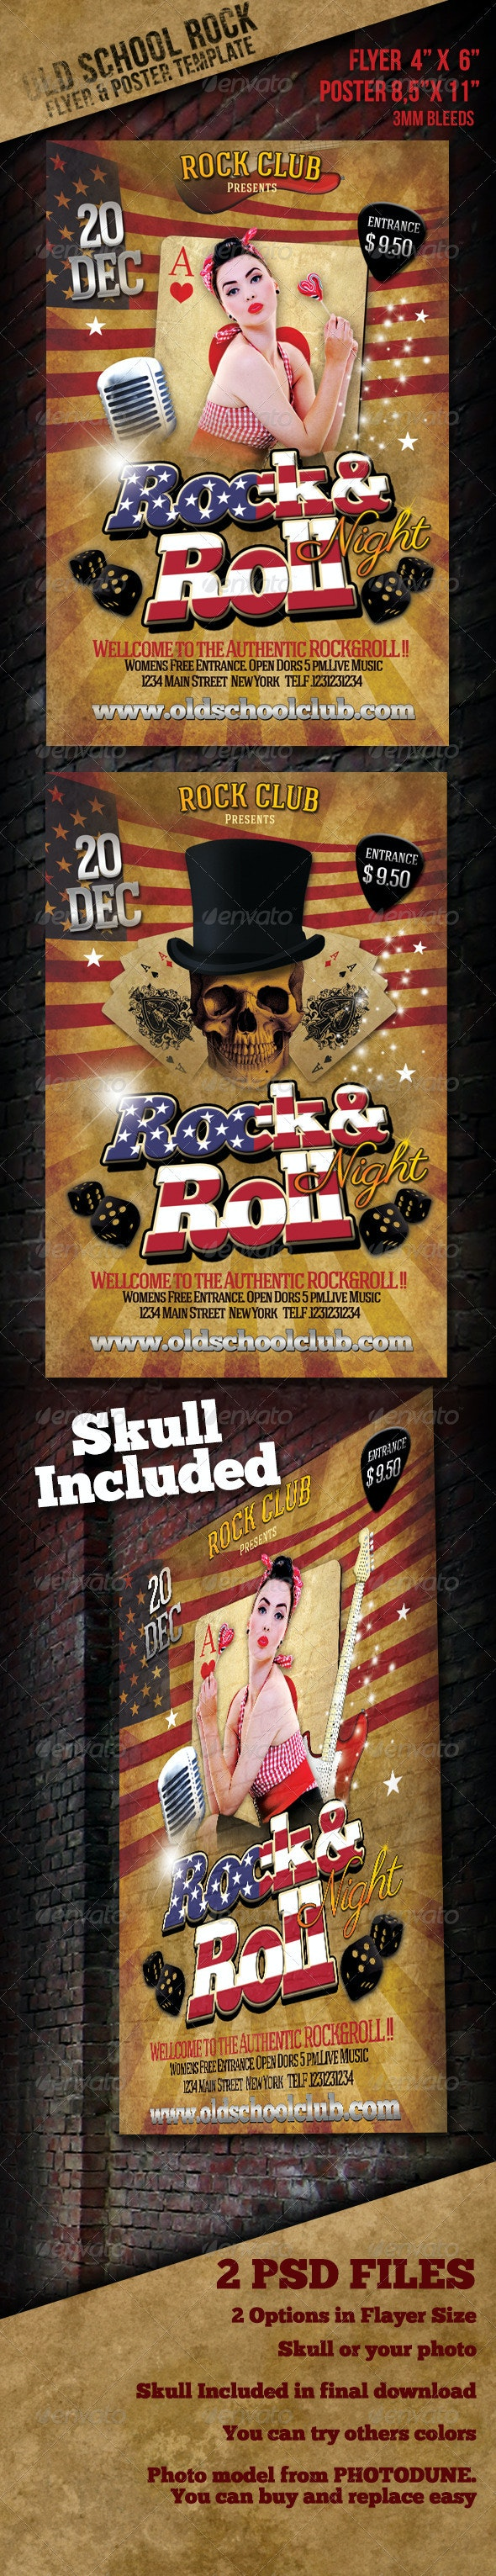 Old School Rock Event Flyer & Poster Template - Events Flyers